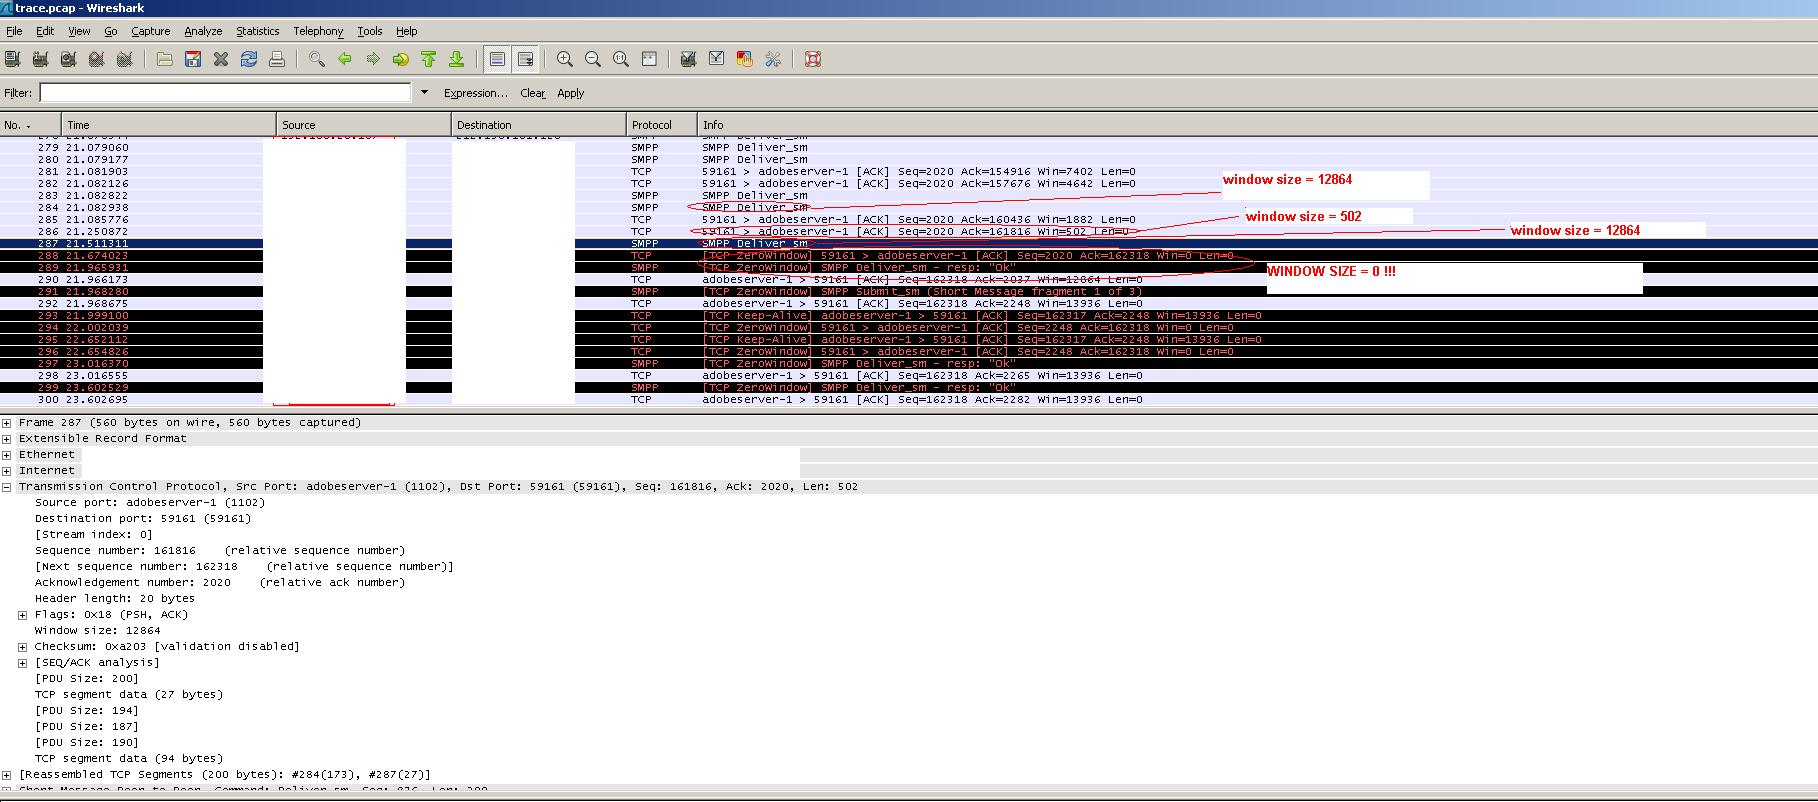 screenshot of dump